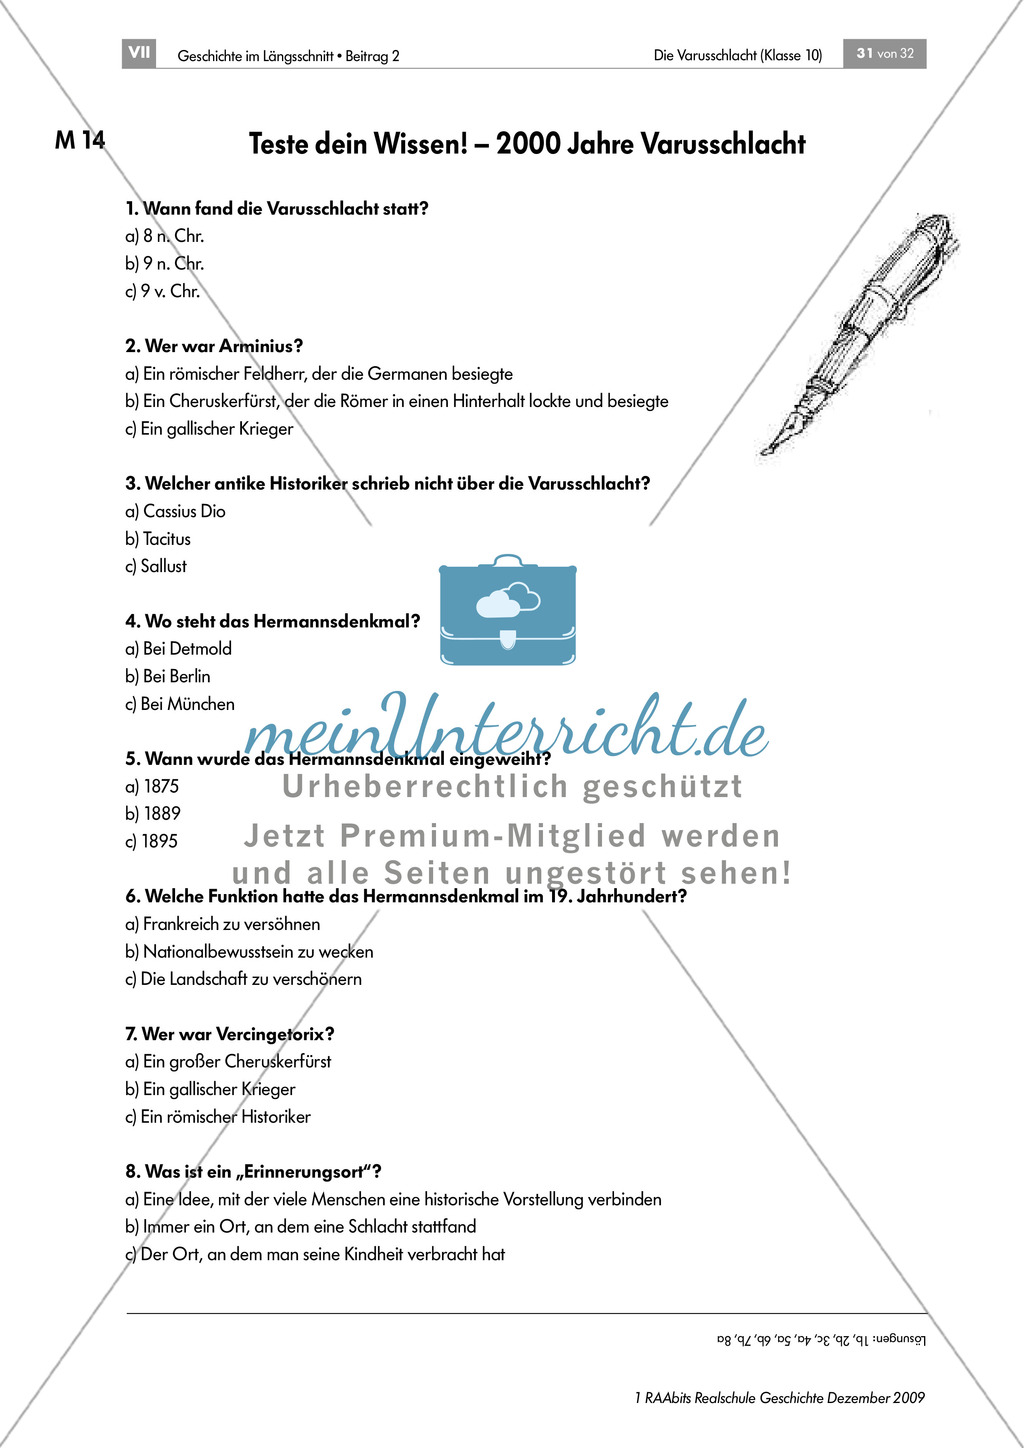 Die Varusschlacht: Lernerfolgskontrolle - Multiple-Choice-Test Preview 1